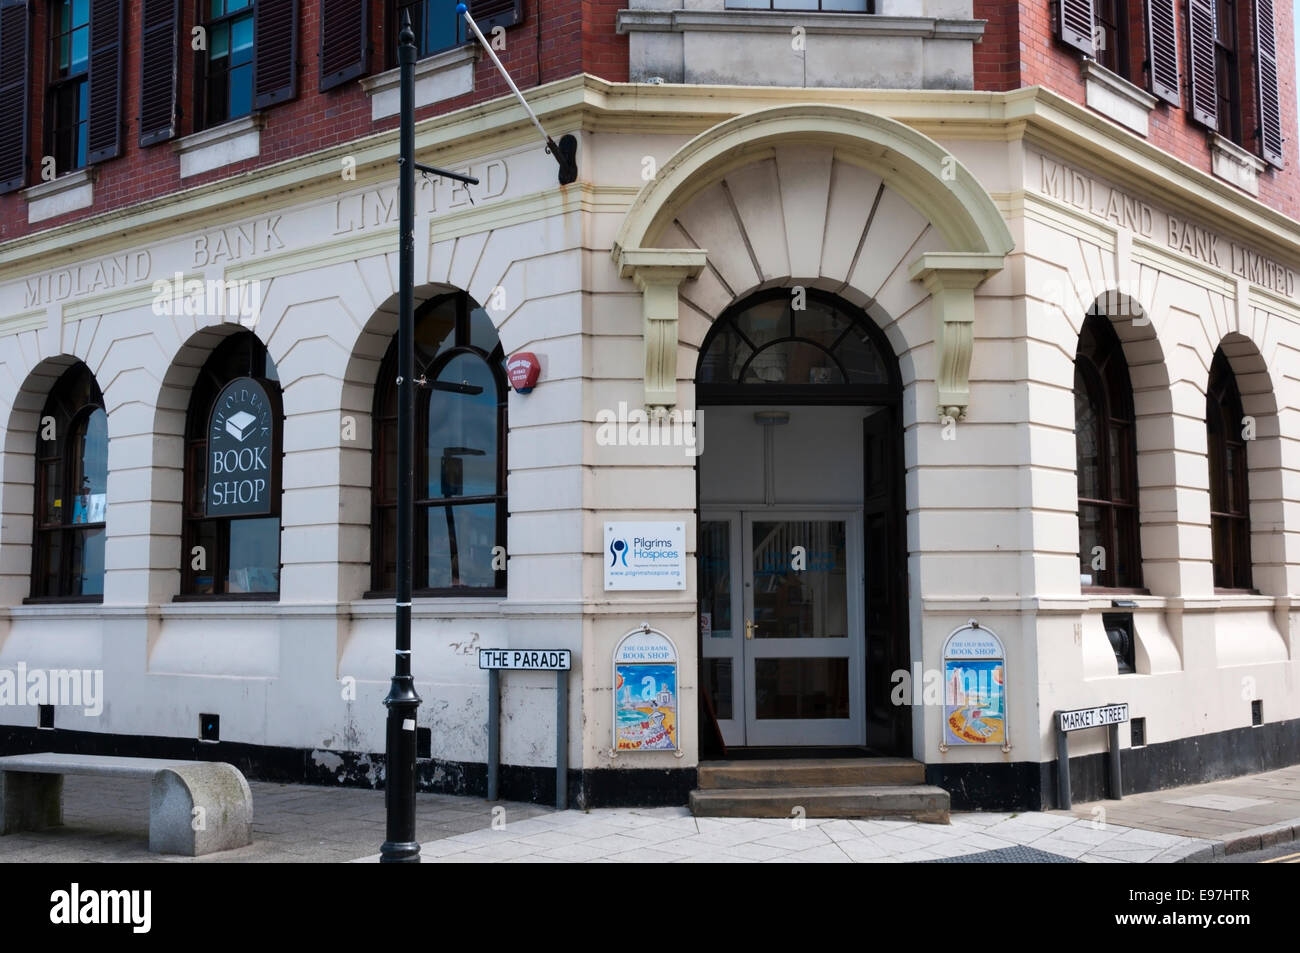 The Old Bank bookshop in Margate is in the corner premises of the now closed Midland Bank. - Stock Image